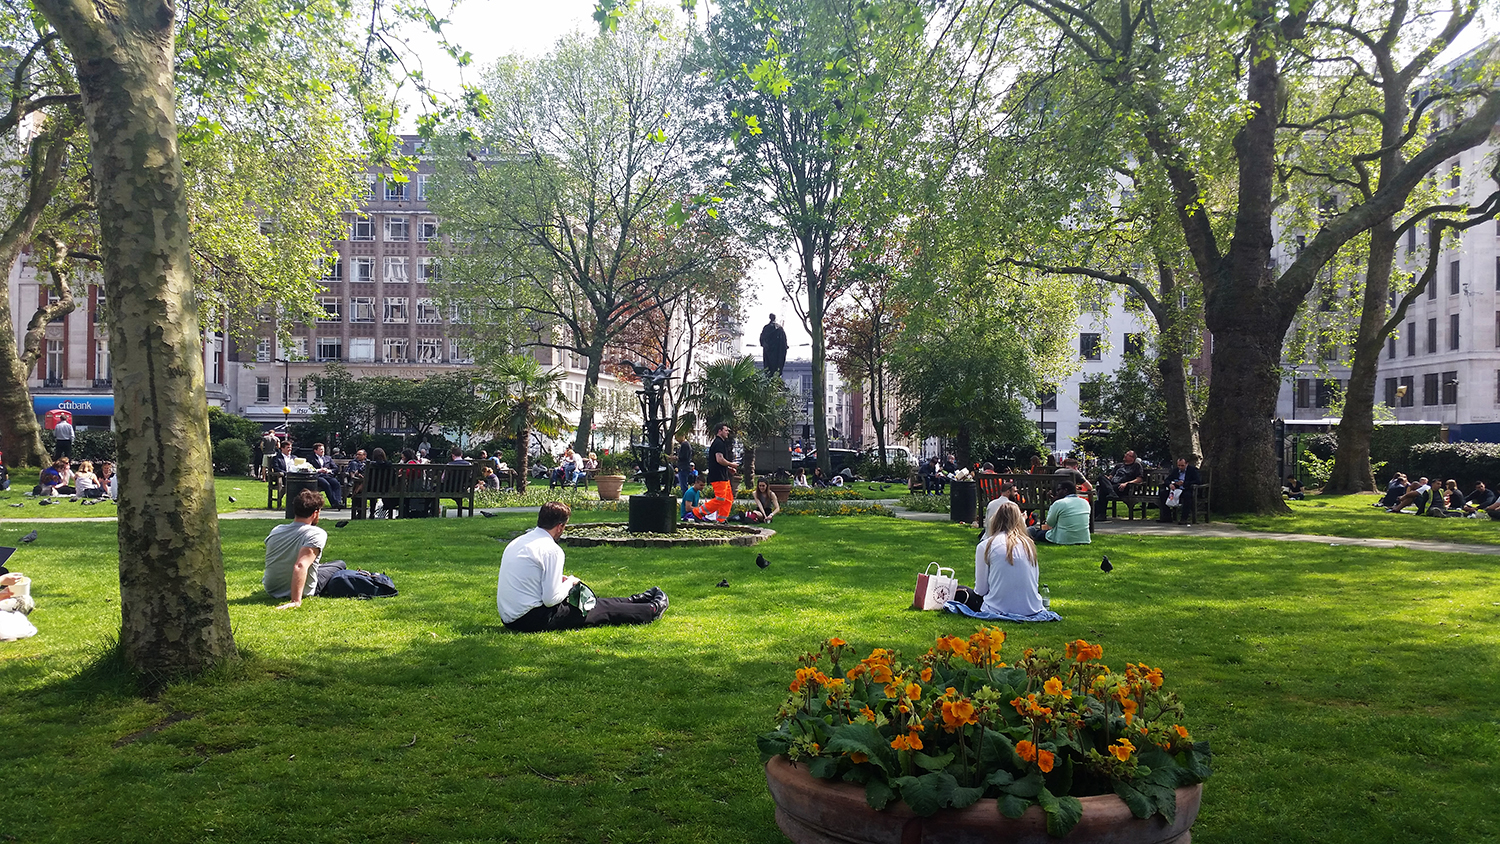 Hanover Square in May 2016. © Rachael Marshall 2016.